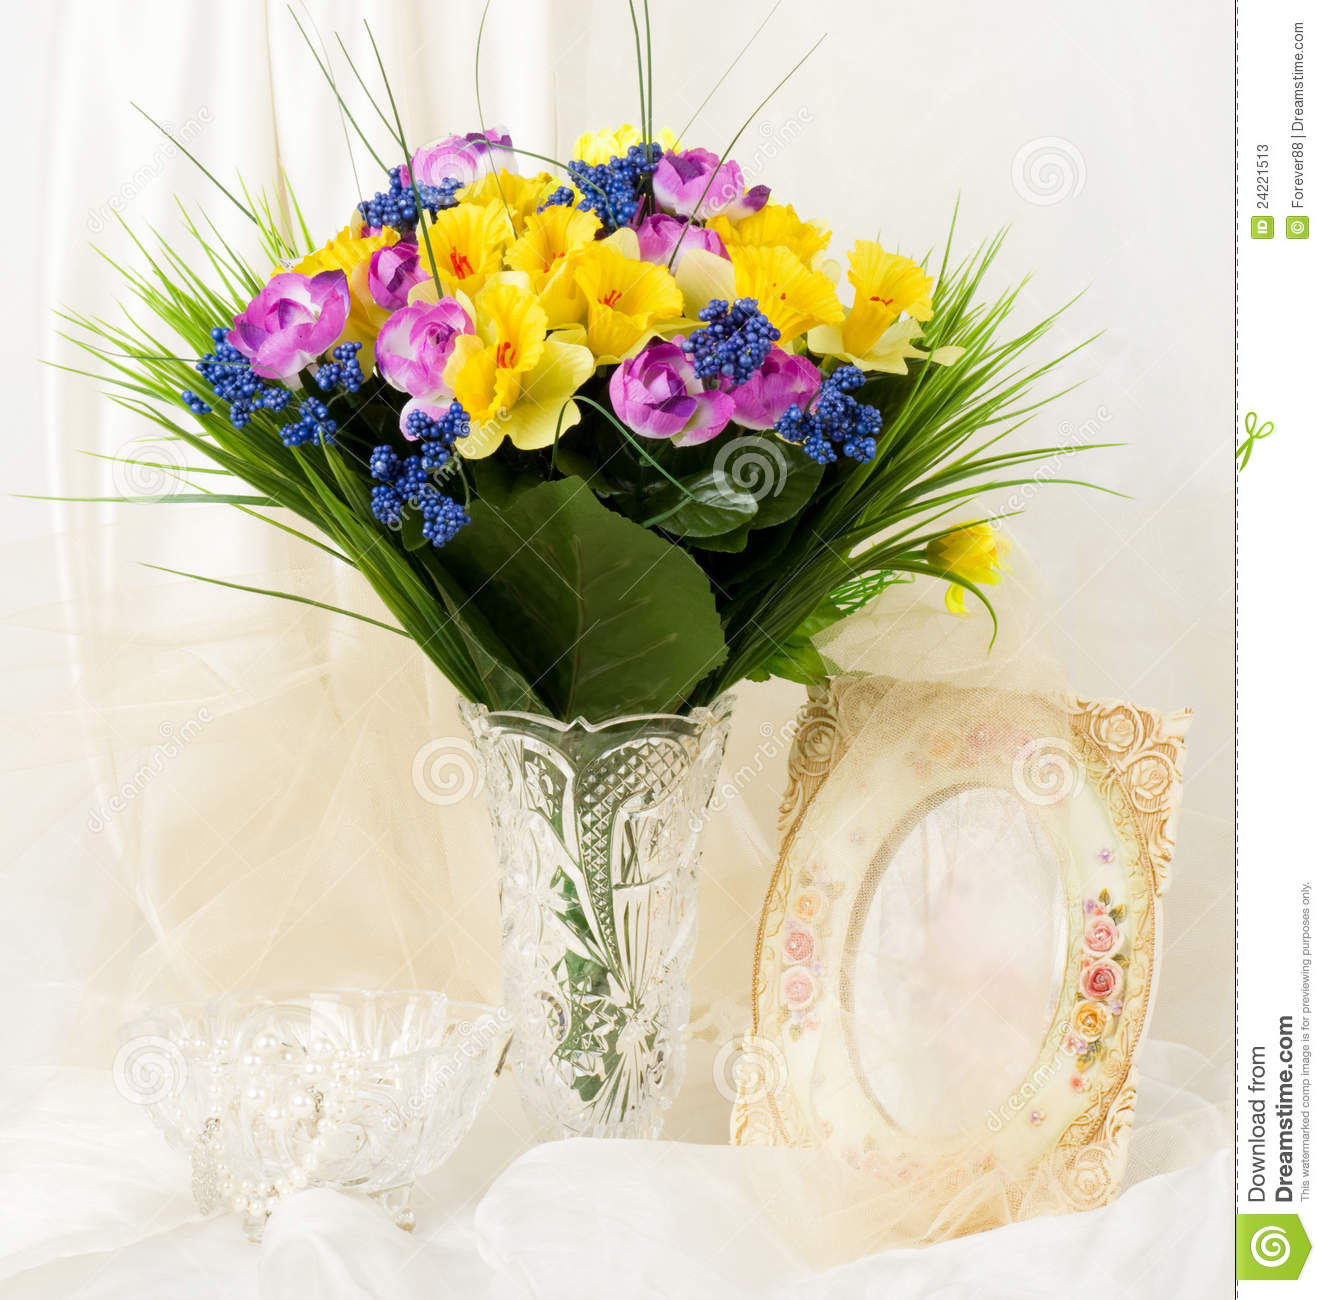 Spring Flowers In A Glass Vase And Frame Stock Image